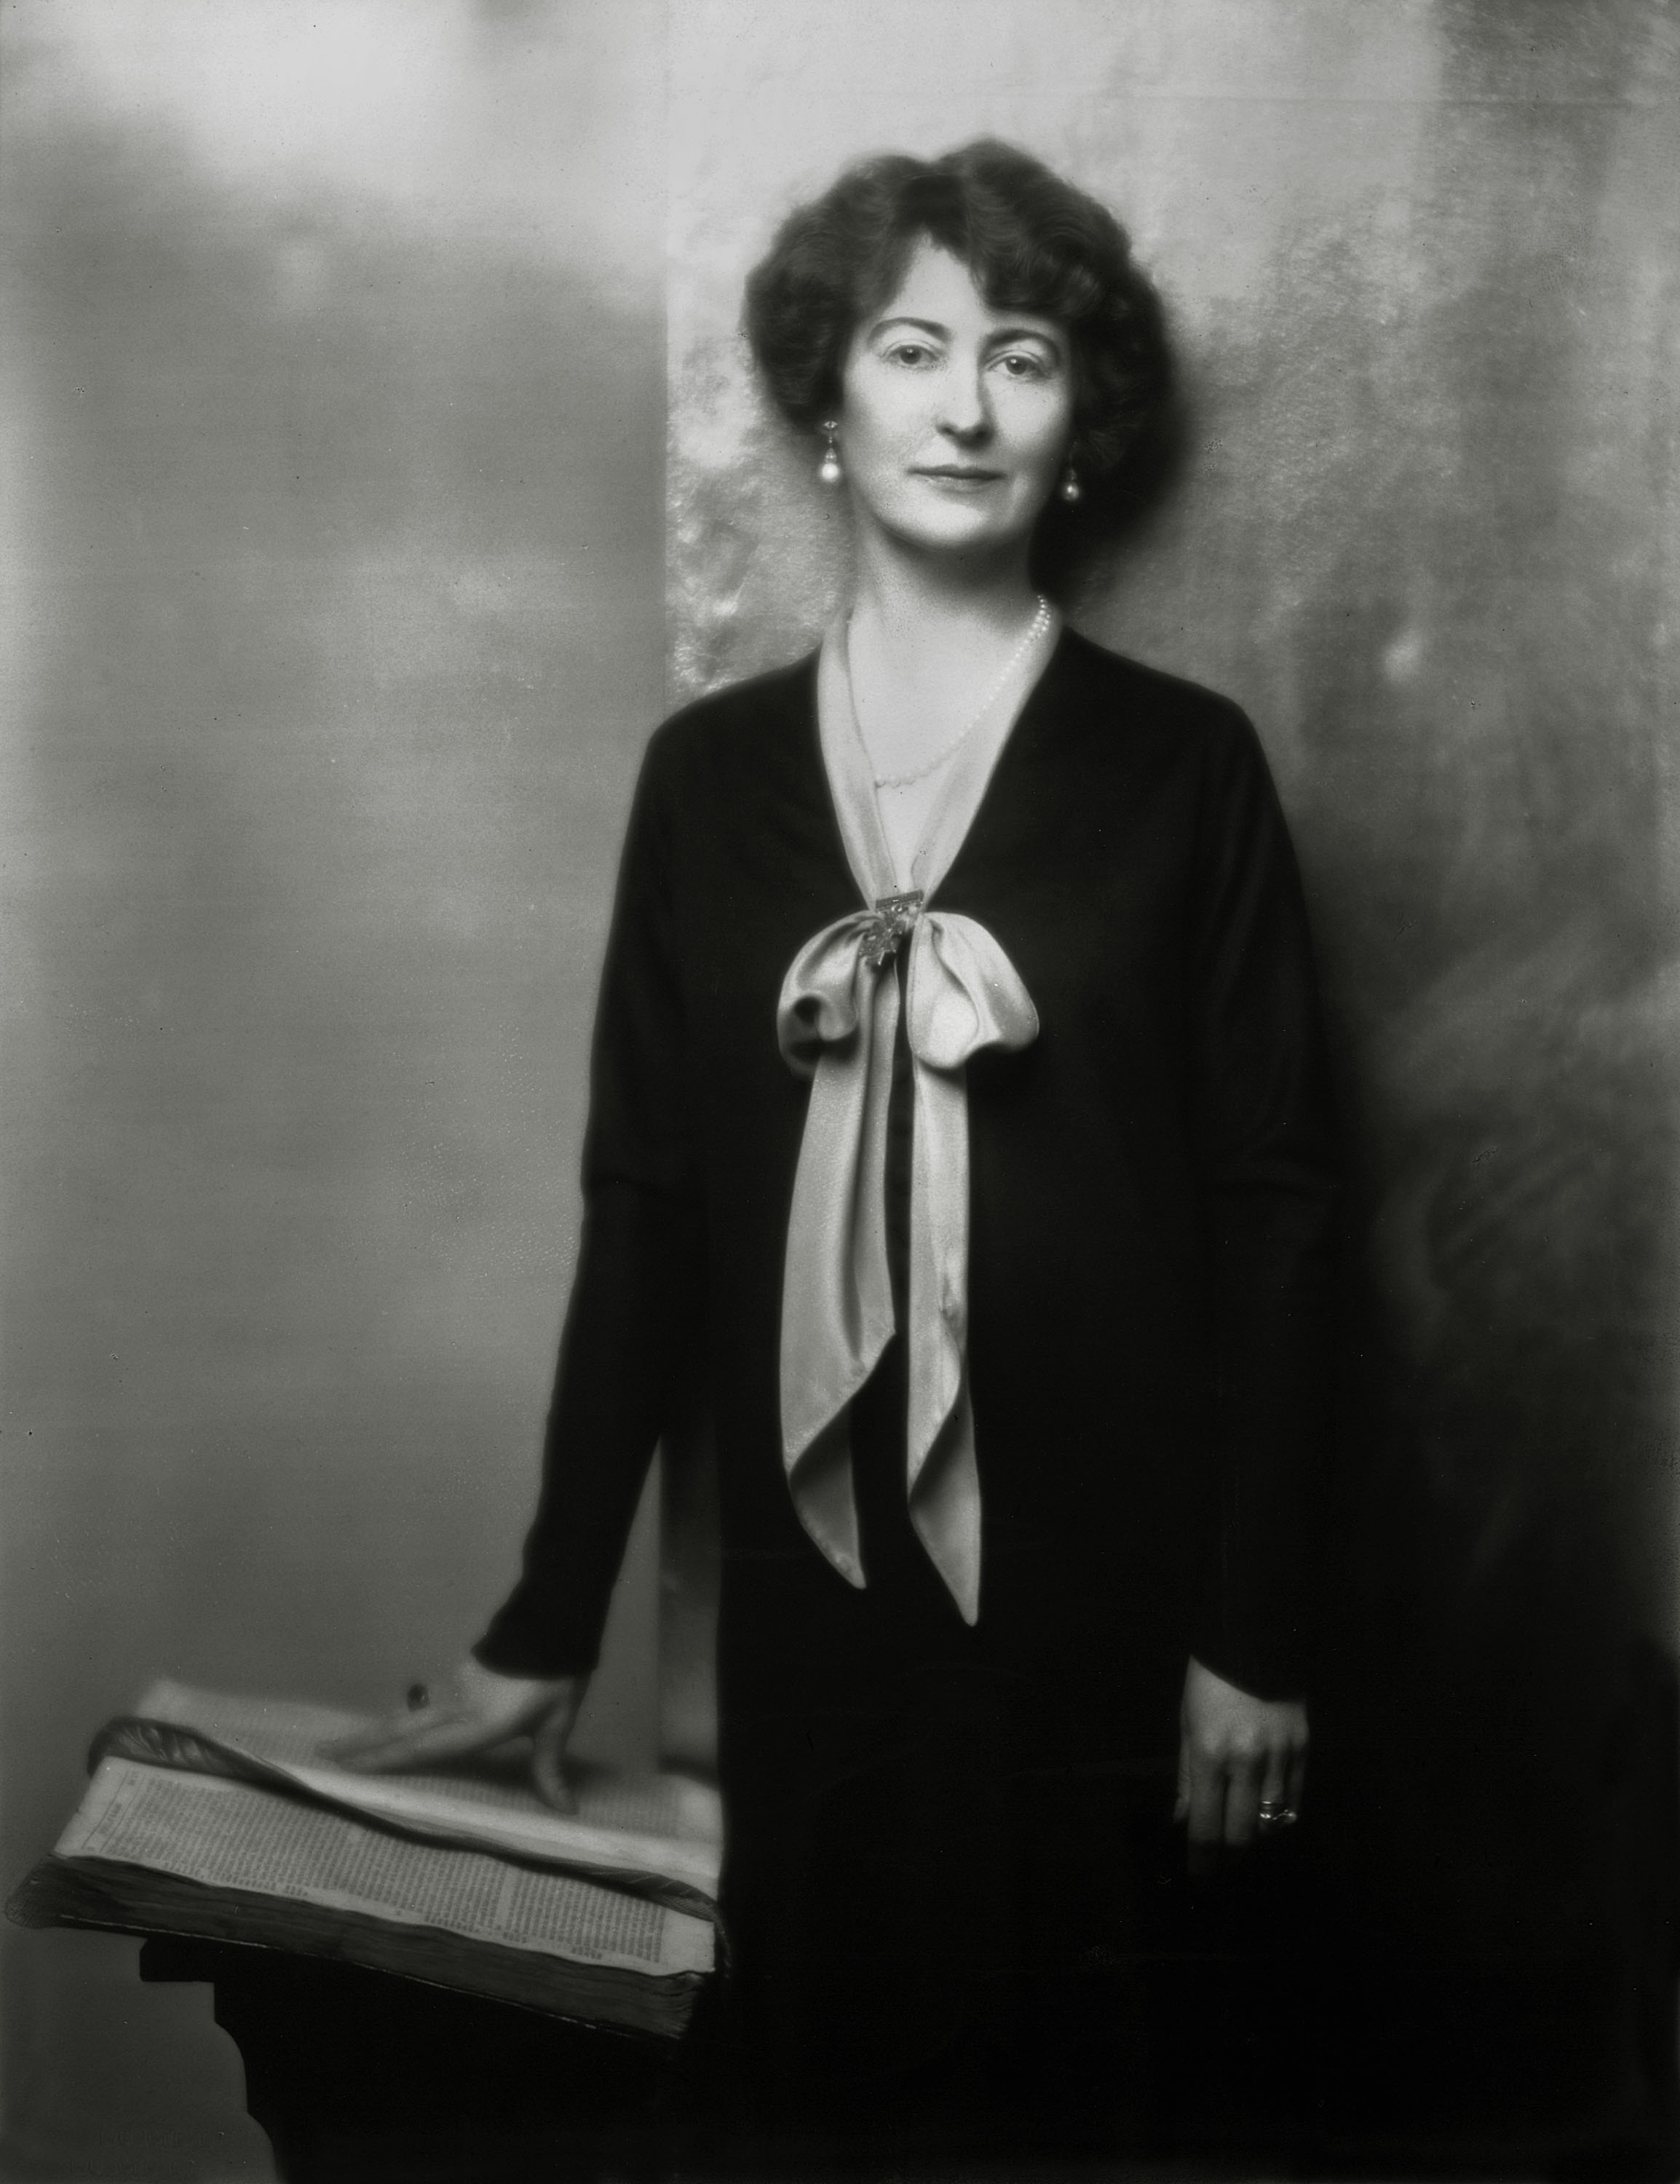 Mildred Barnes Bliss